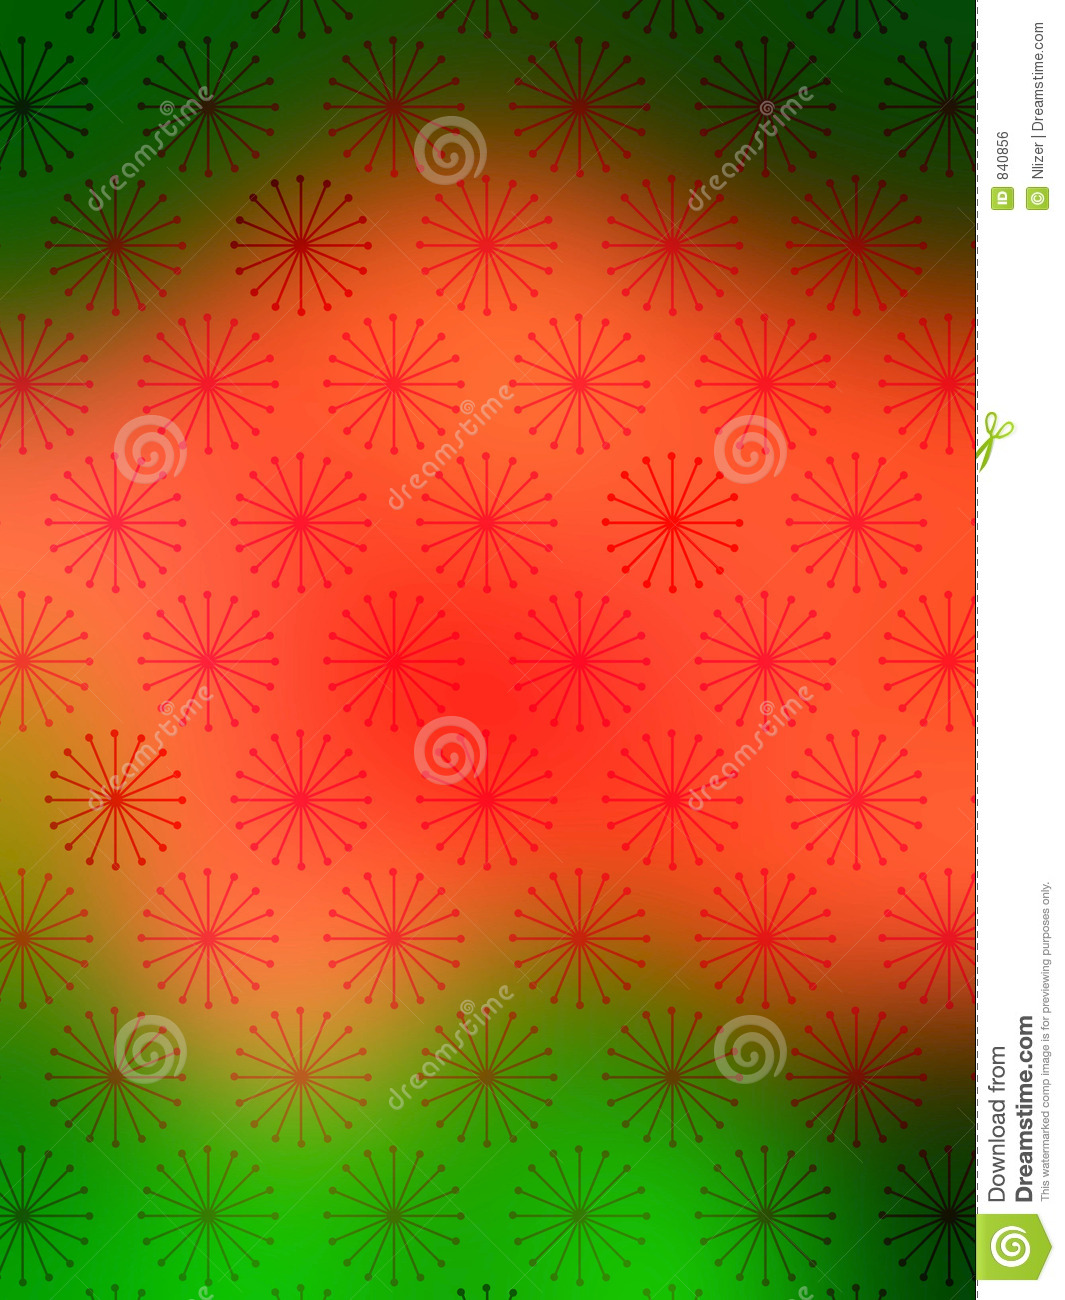 Red Green Snow Flakes wallpaper